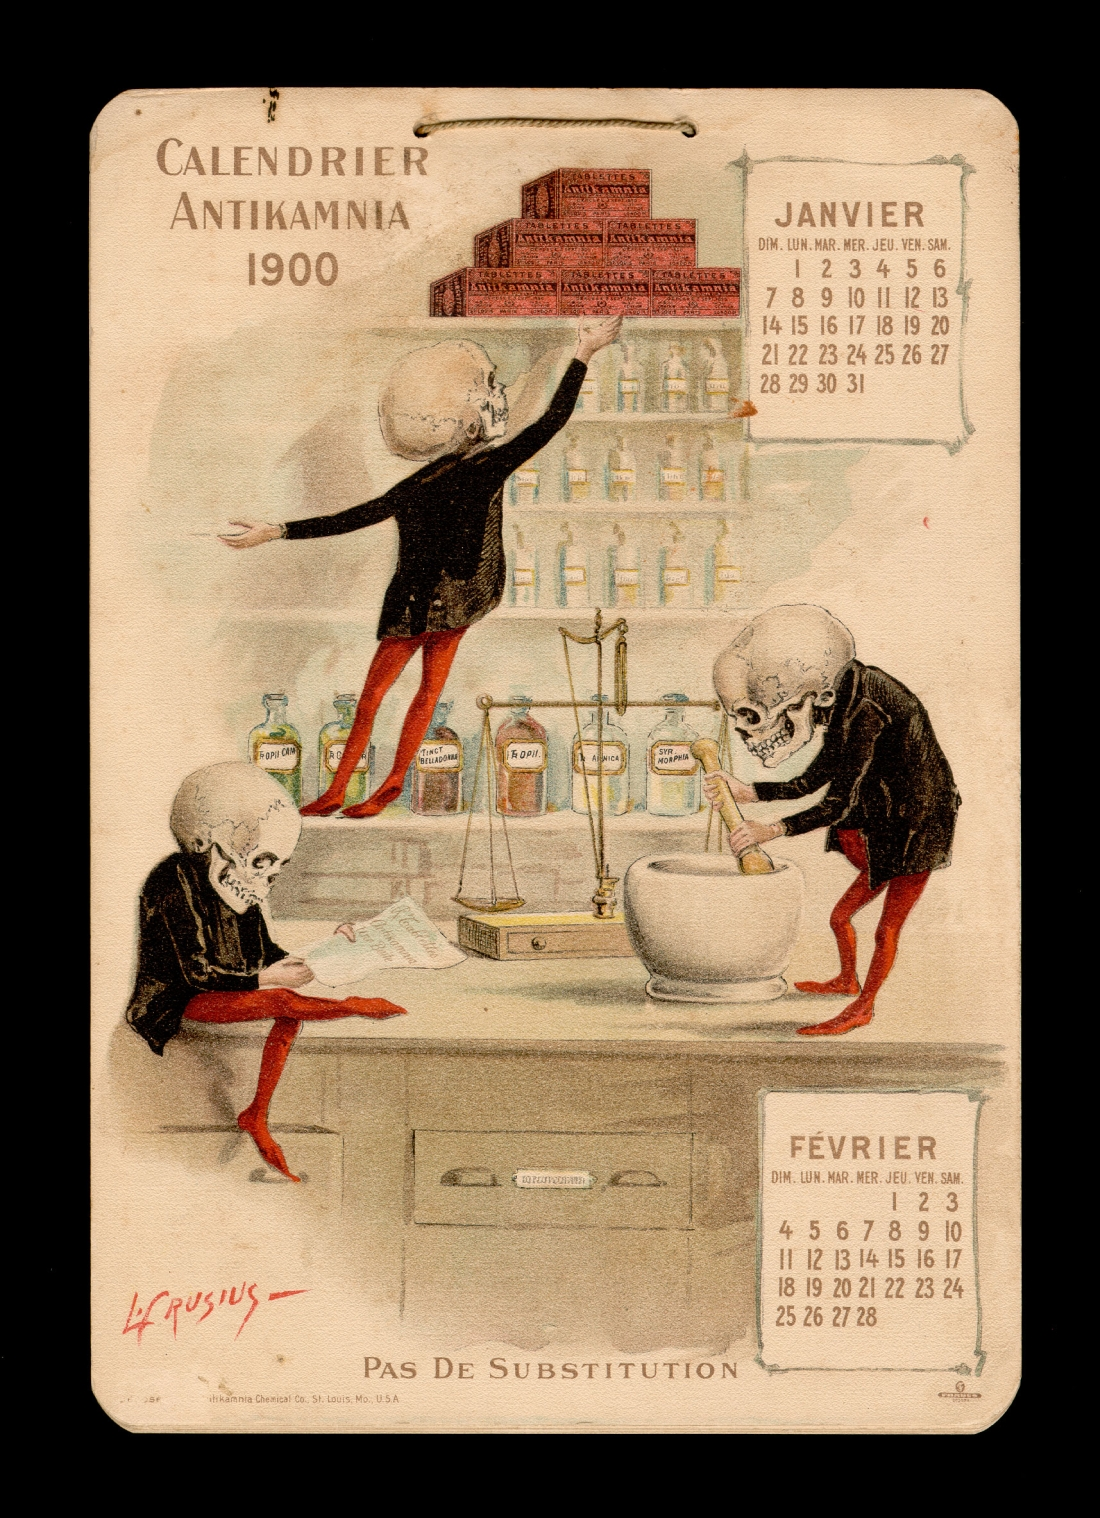 Antikamnia calendar 1900 - french